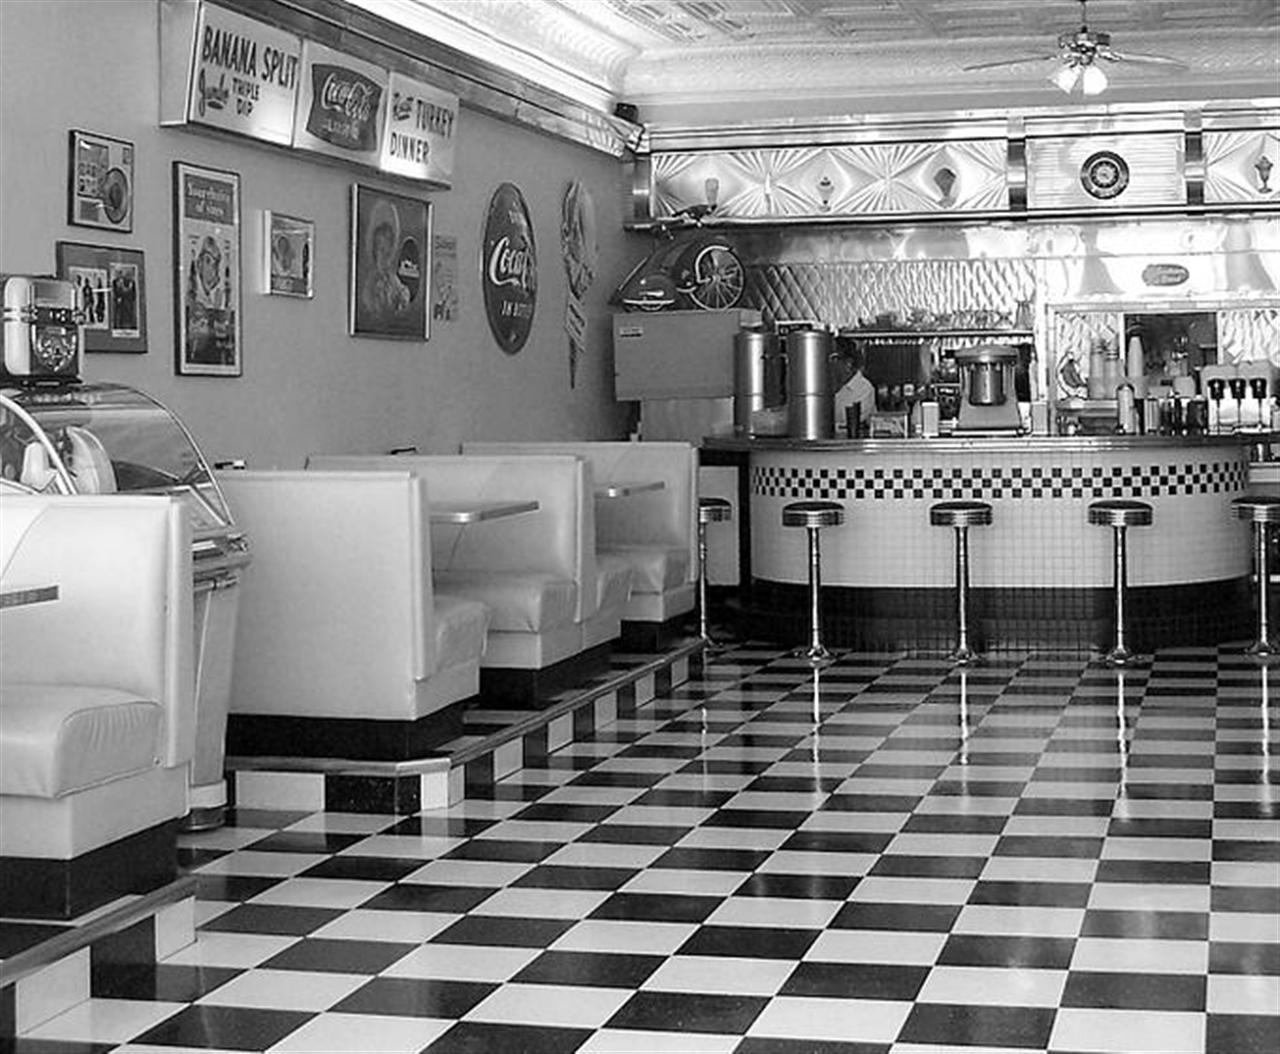 American diner wallpaper wallpapersafari for 50s diner style kitchen